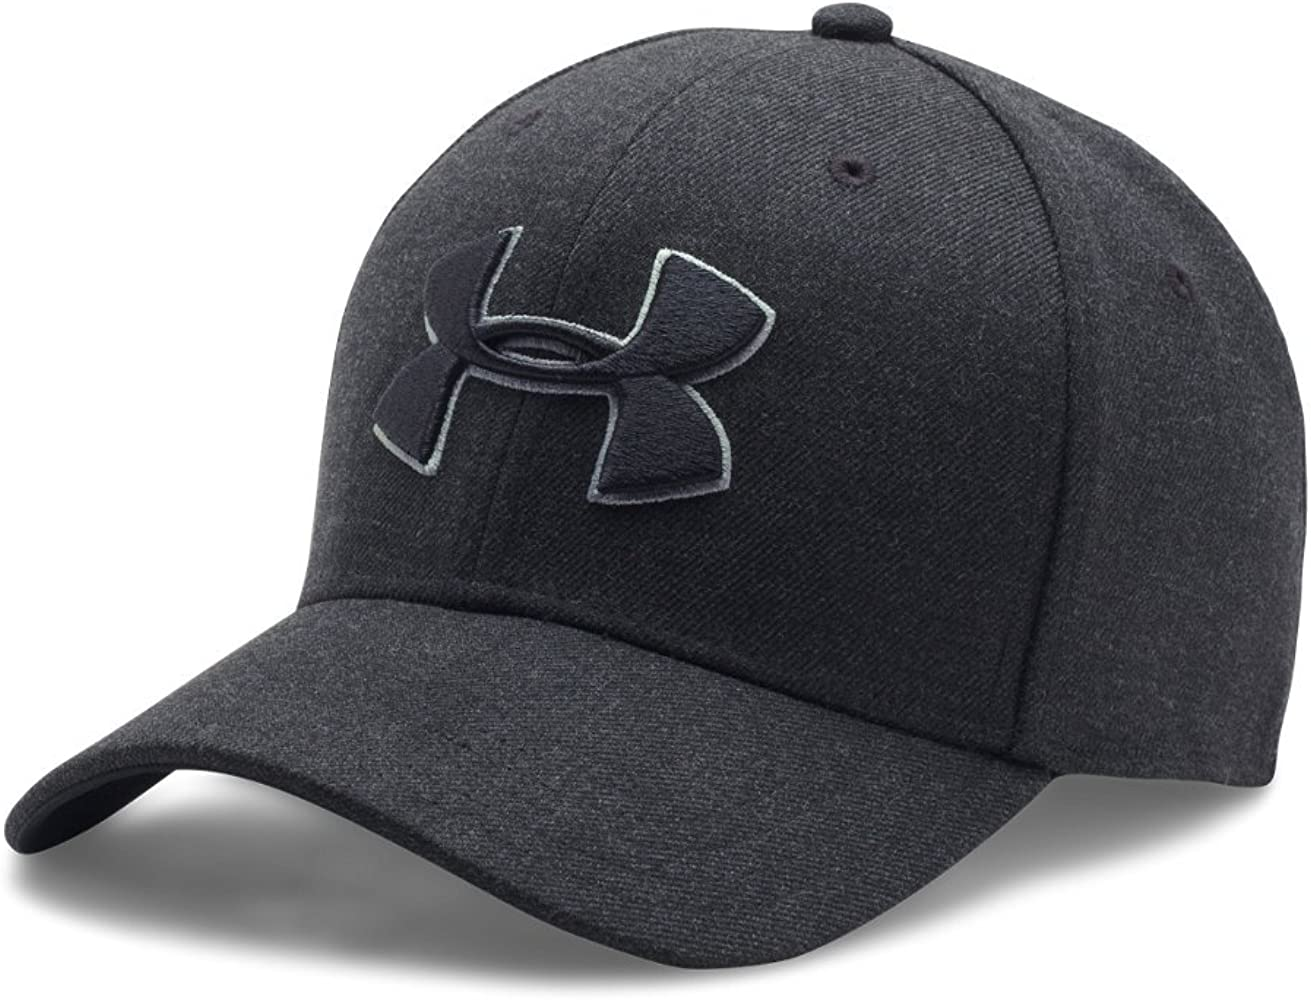 Under Armour hombres de closer 2.0 Cap, Black/ Steel/ Black ...